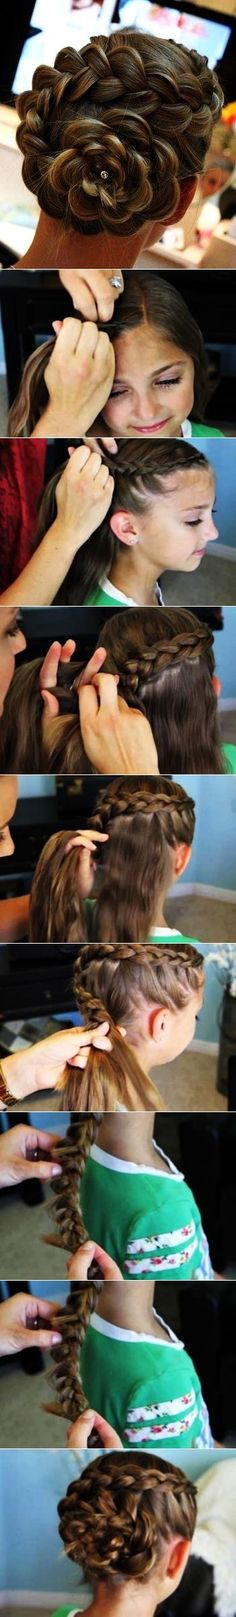 DIY Flower Hair beauty long hair updo braids how to diy hair hairstyles tutorials hair tutorials easy hairstyles The post DIY Flower Hair beauty long hair updo braids how to diy hair hairstyles tutorial appeared first on Hair Styles. Hairstyles Haircuts, Pretty Hairstyles, Braided Hairstyles, Wedding Hairstyles, Hairstyle Braid, Latest Hairstyles, Flower Hairstyles, Braided Updo, Lehenga Hairstyles